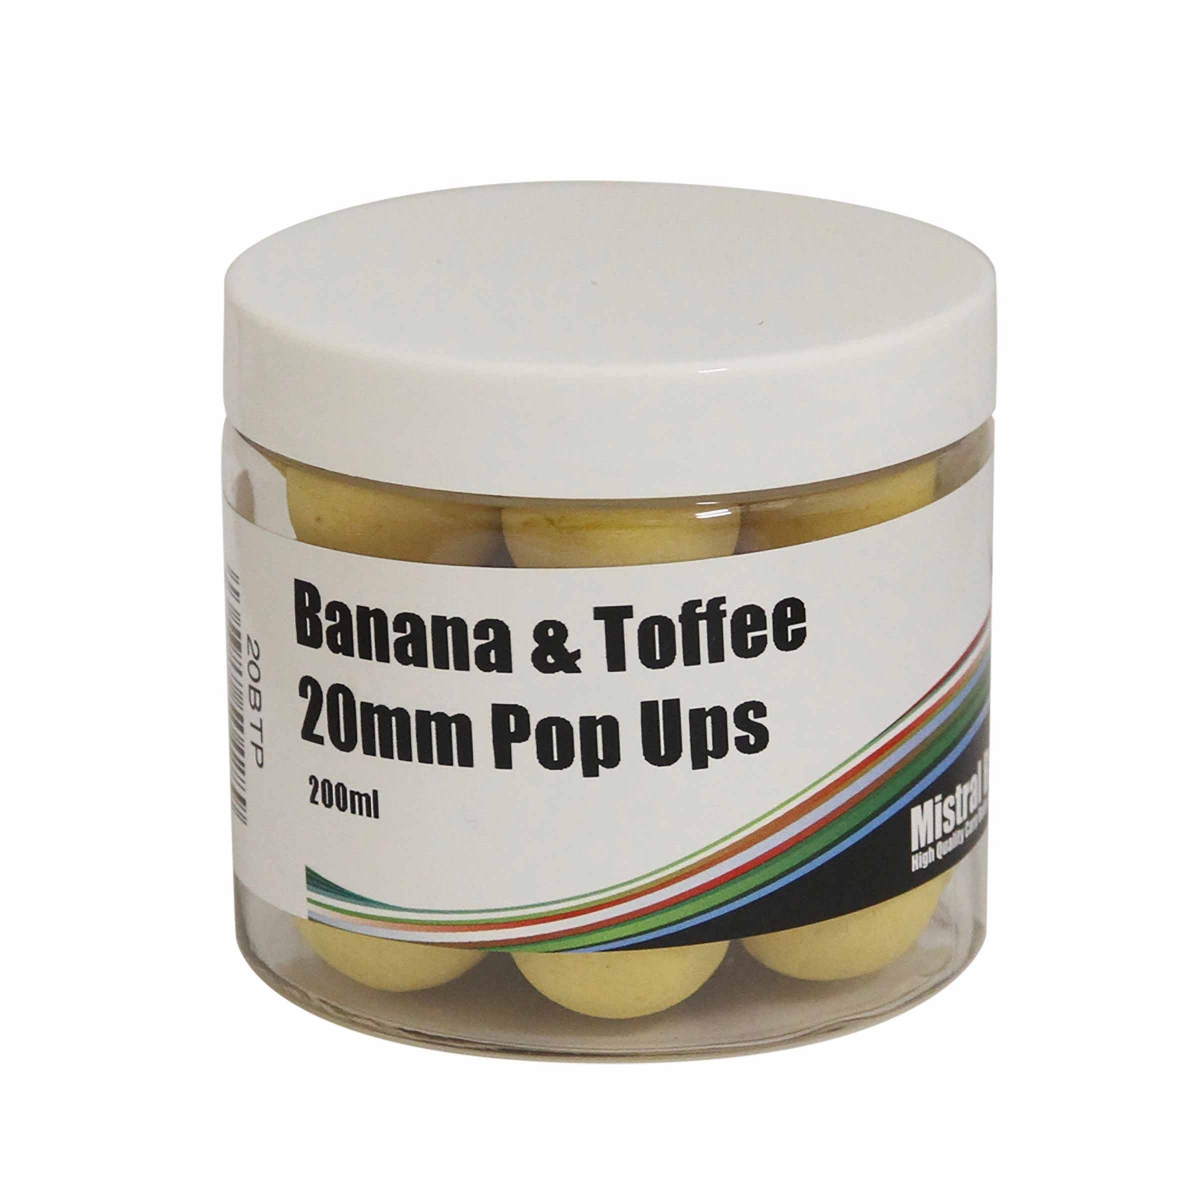 Banana and toffee pop ups